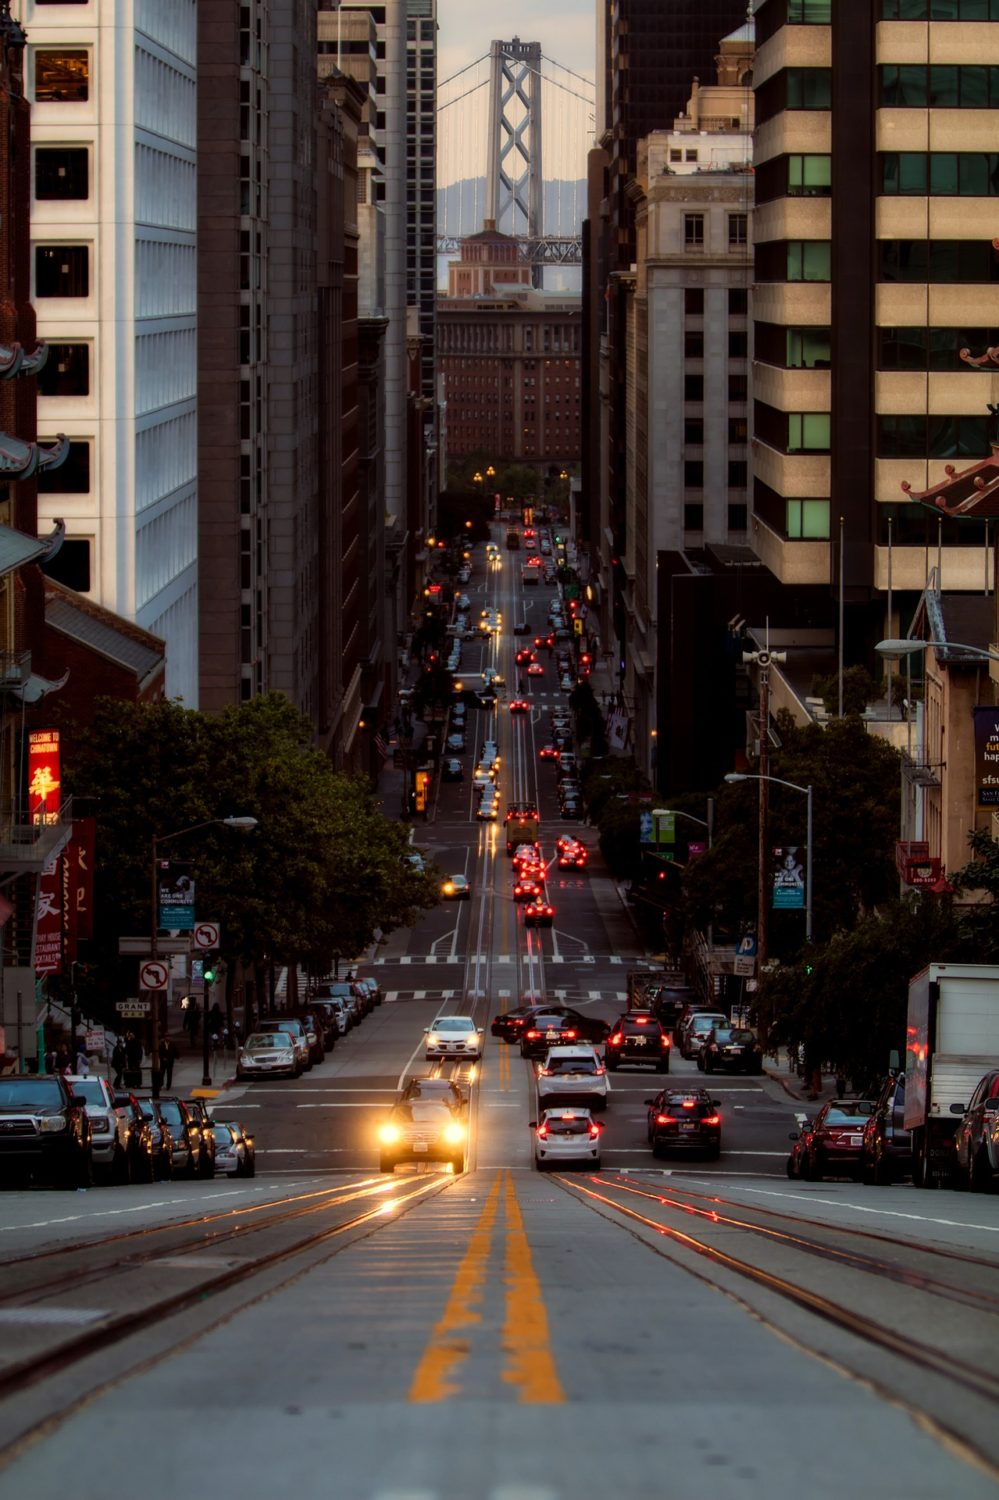 City centre, San Francisco, California